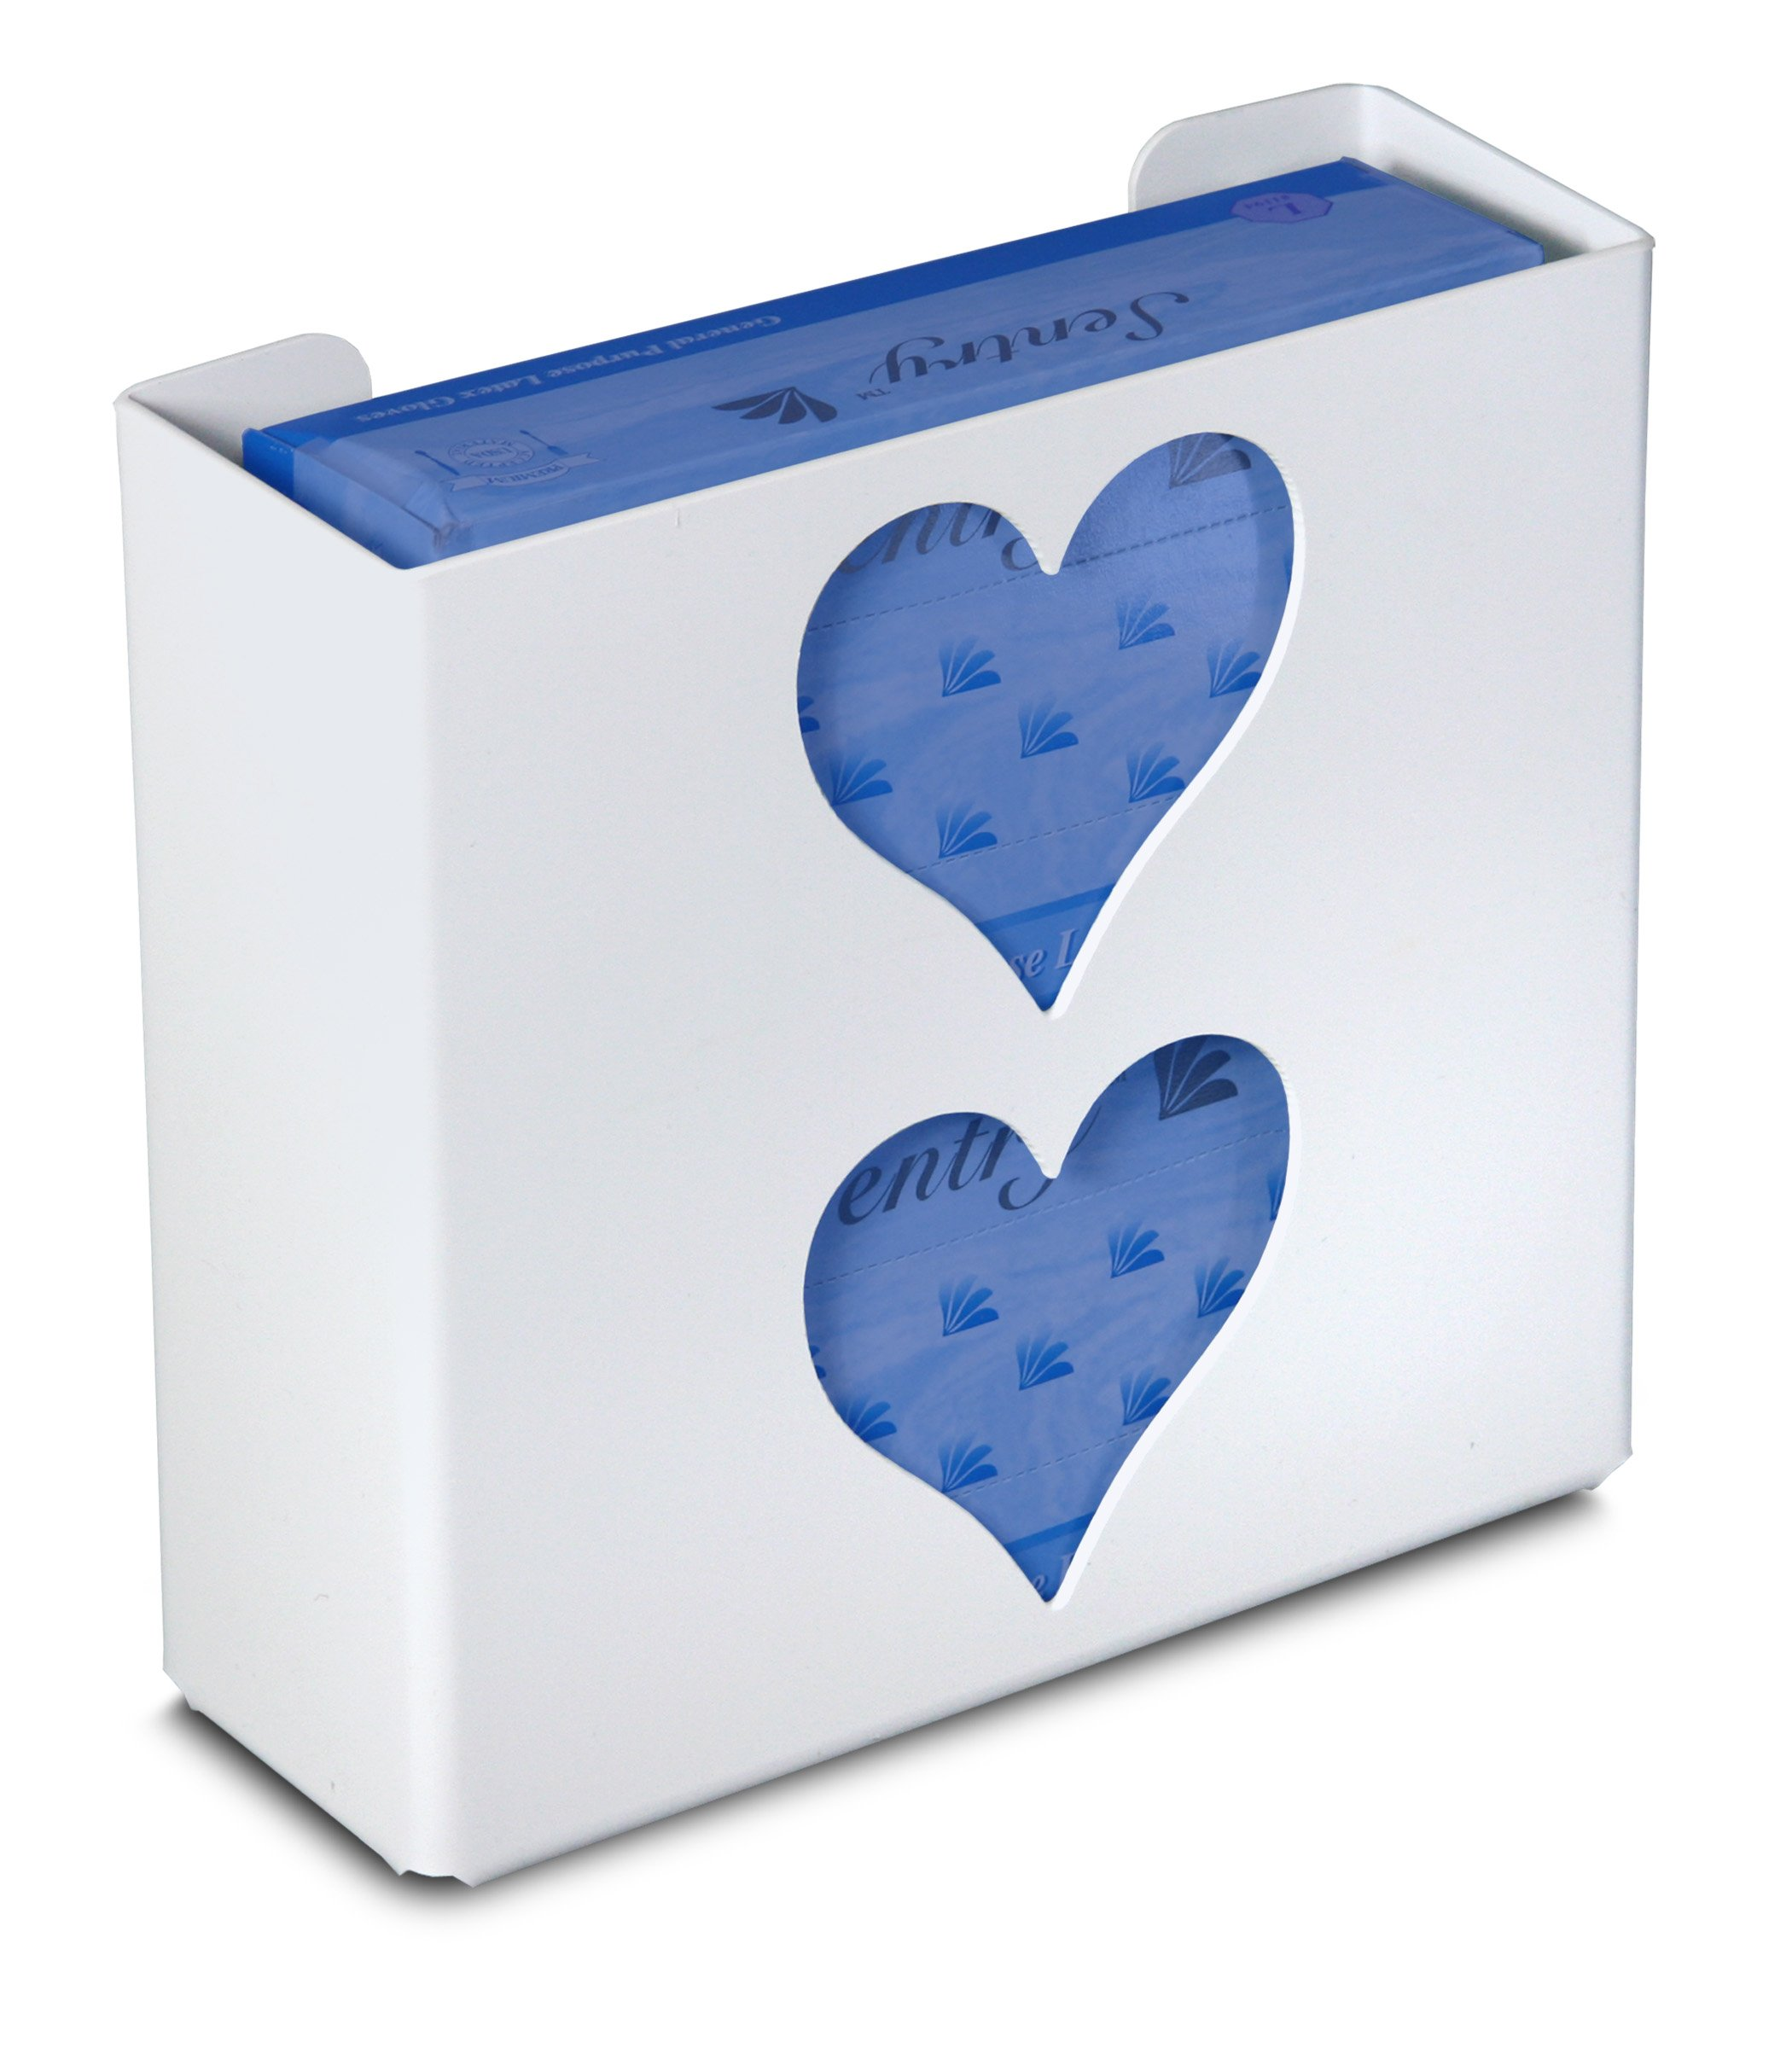 TrippNT 51051 Priced Right Double Glove Box Holder with Heart, 11'' Width x 10'' Height x 4'' Depth